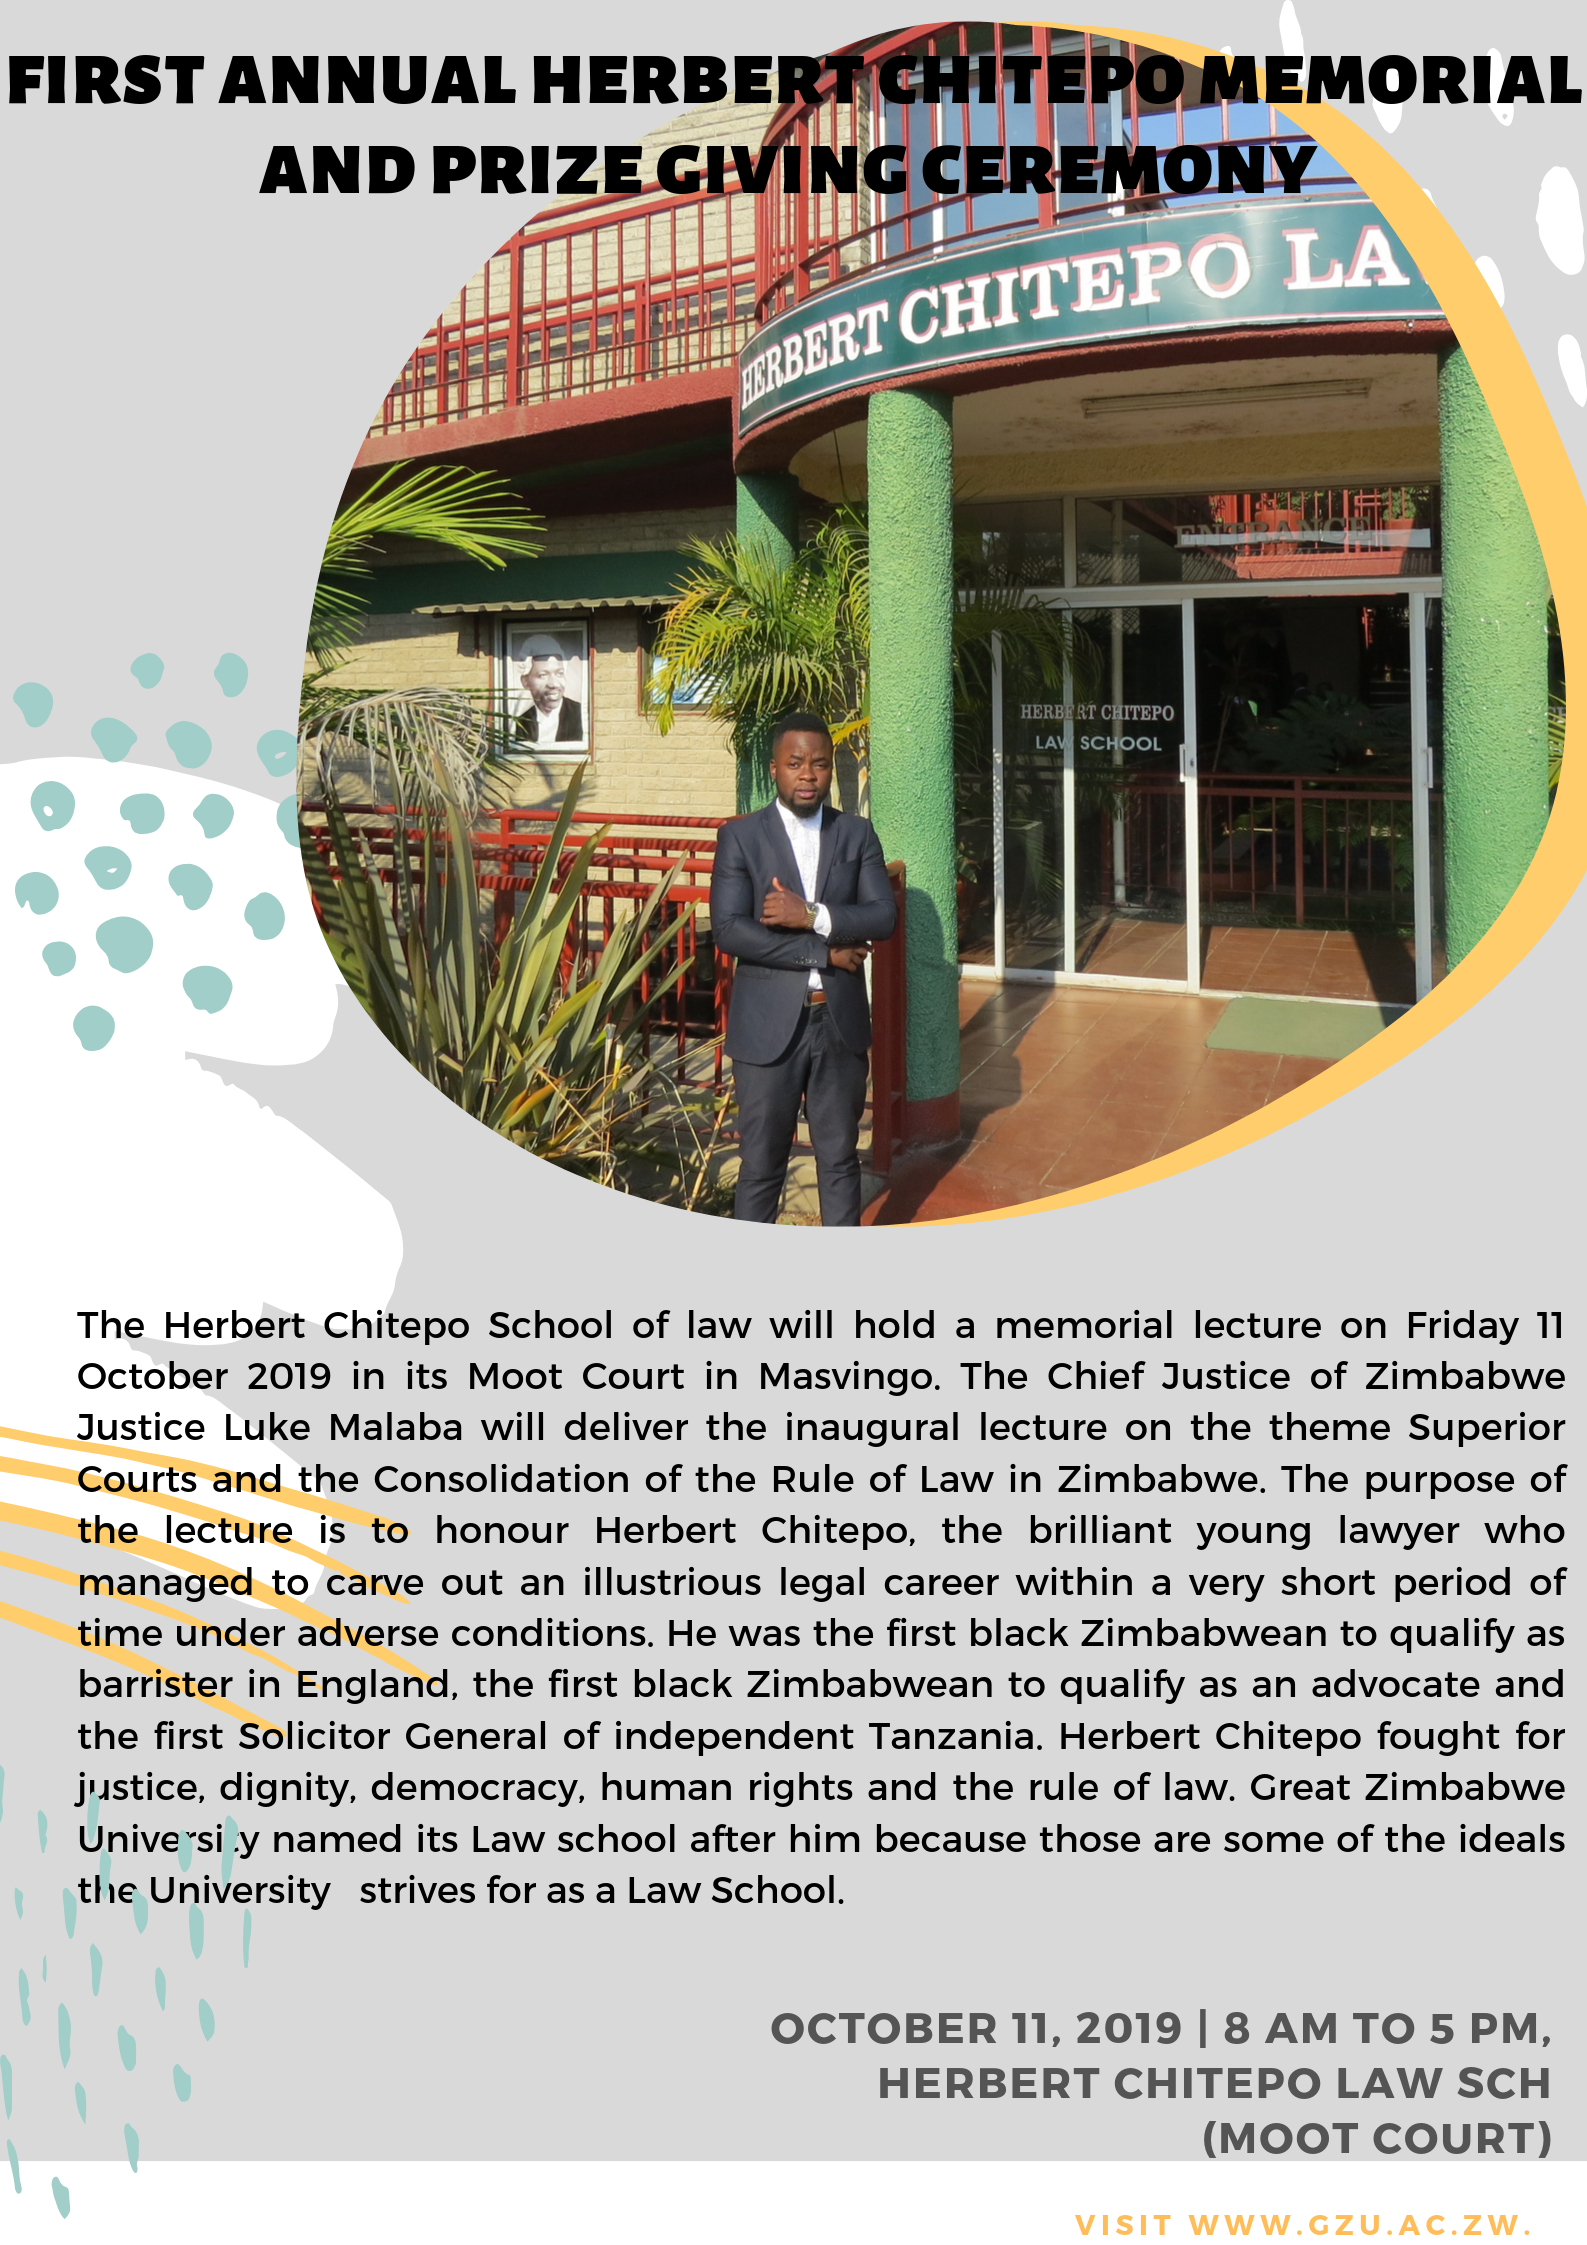 The First Annual Herbert Chitepo Memorial Lecture Modern Illustrated Education Poster